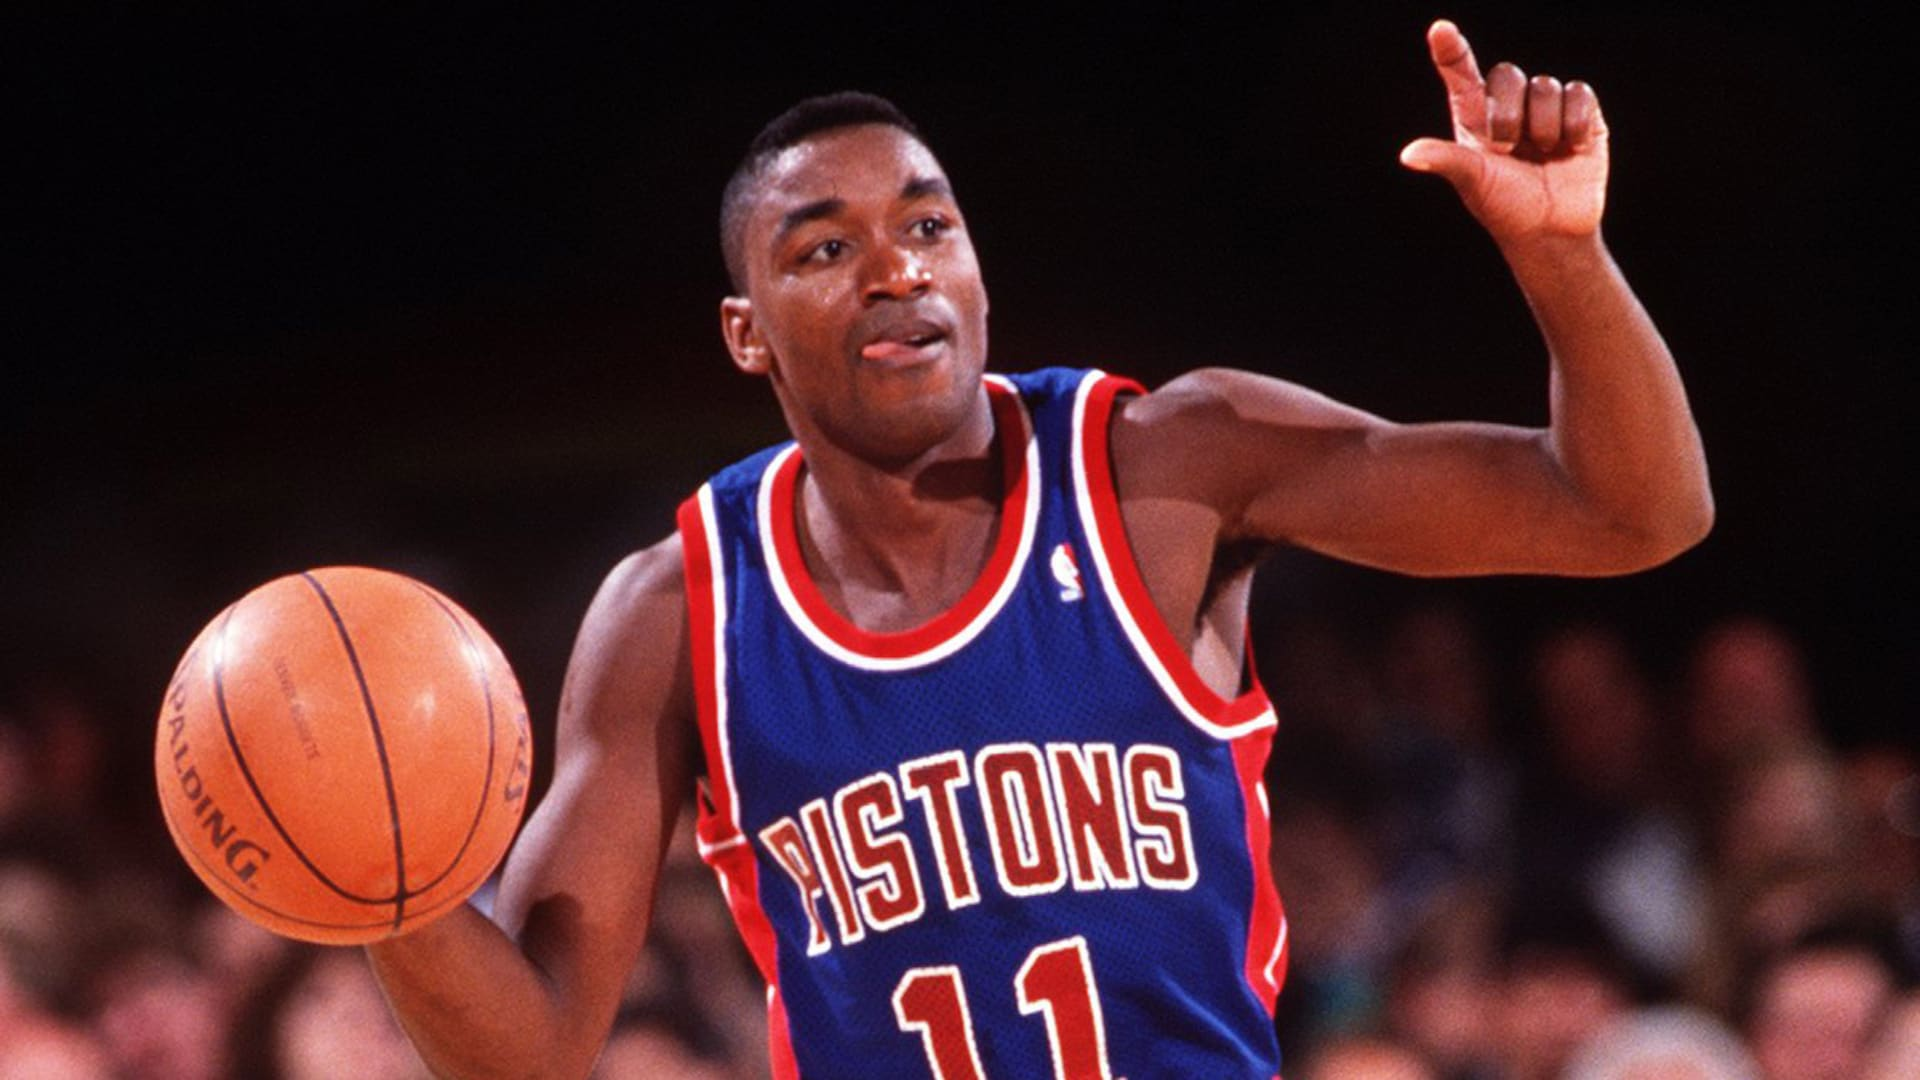 Legendary Moments in NBA History: Pistons win NBA's highest-scoring game